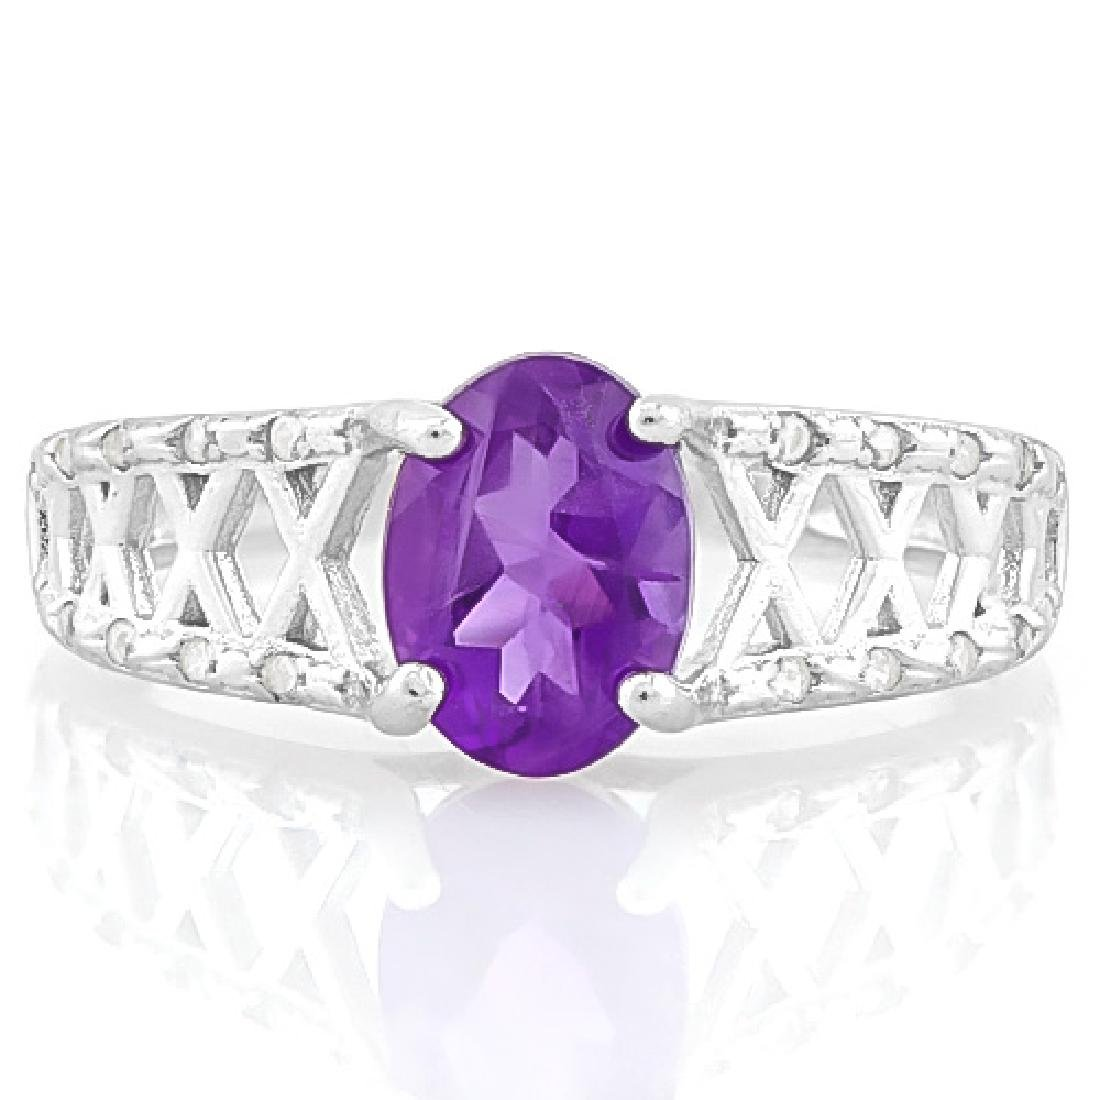 1 CARAT AMETHYST & (20 PCS) FLAWLESS CREATED DIAMOND 92